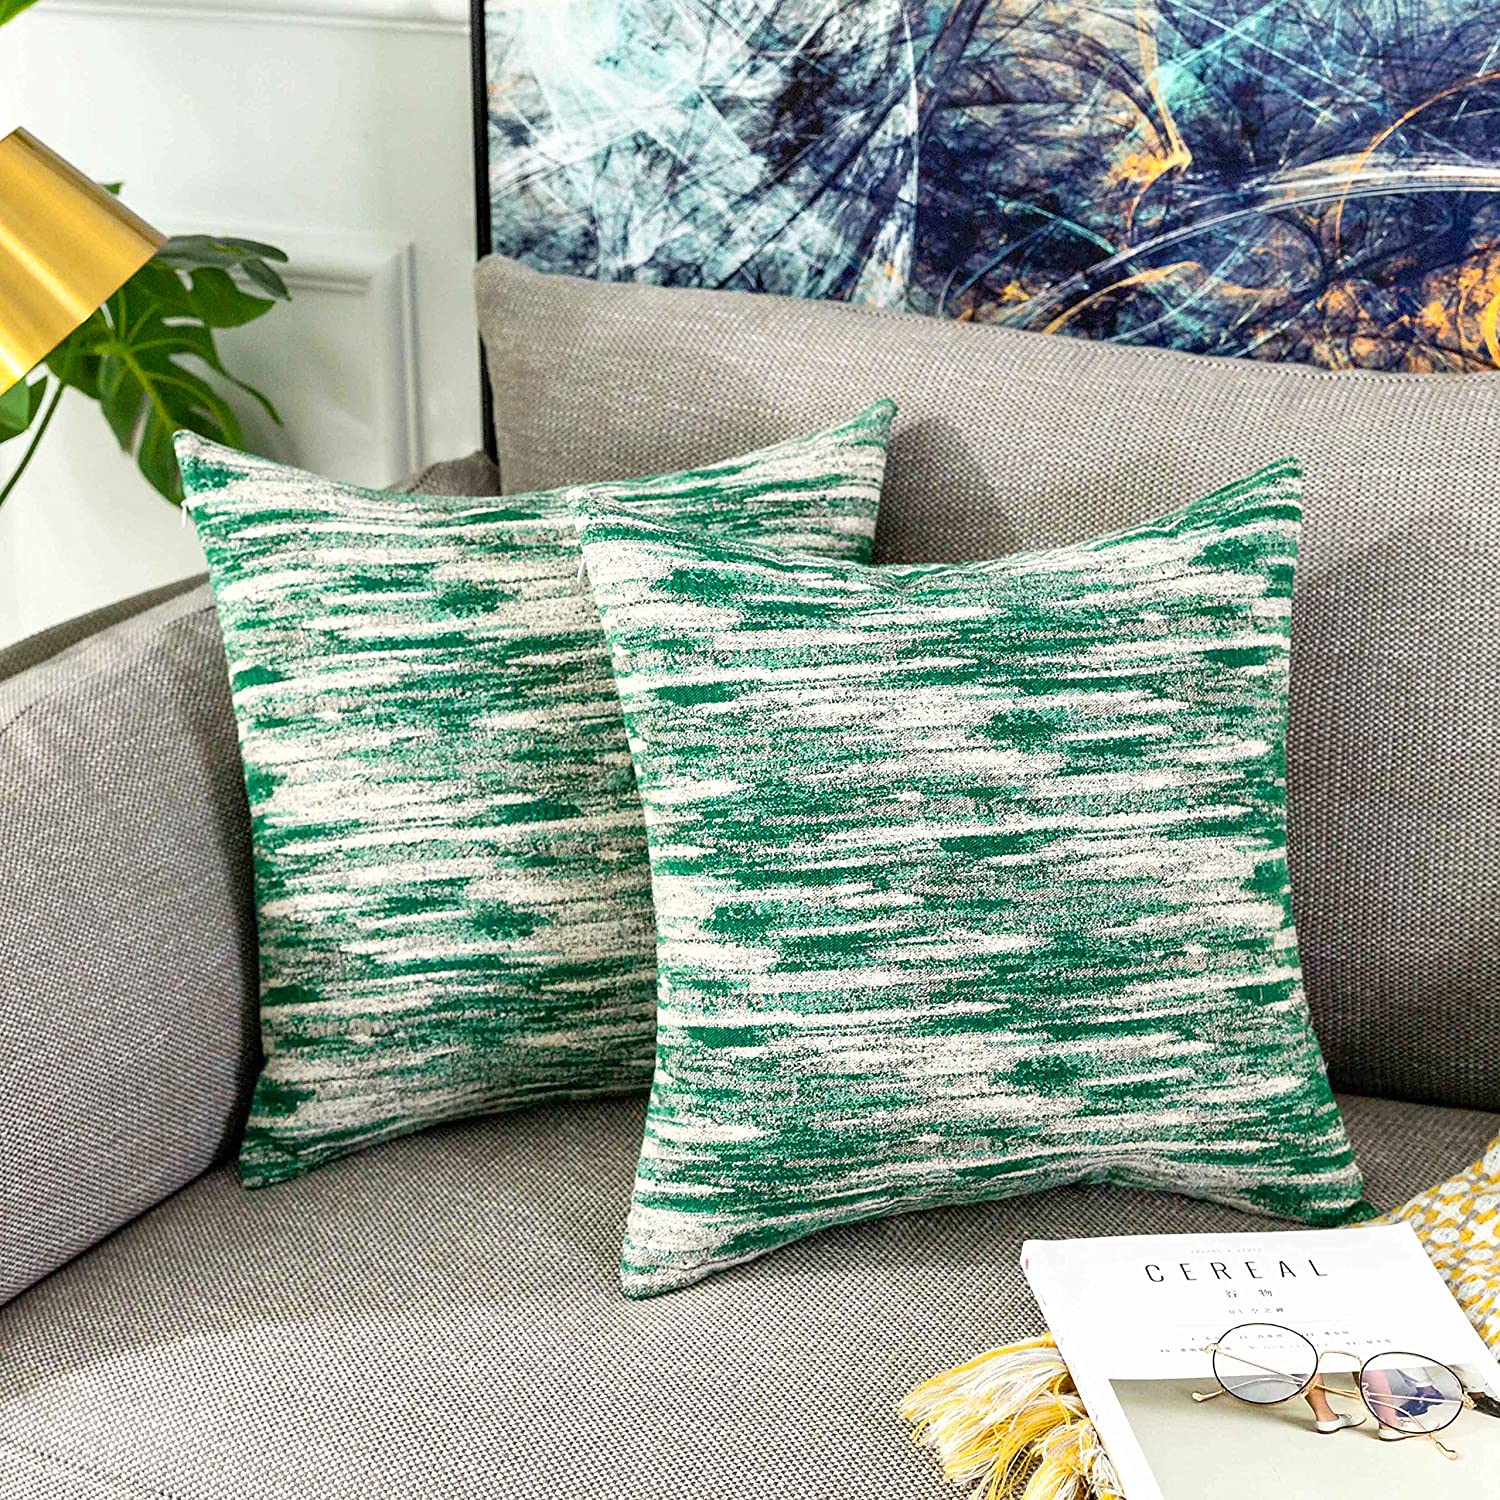 Amazon Com Home Brilliant Abstract Textured Pillow Covers Decorative Cushion Covers For Bed 18x18 Inches 45x45 Cm 2 Pack Green Home Kitchen